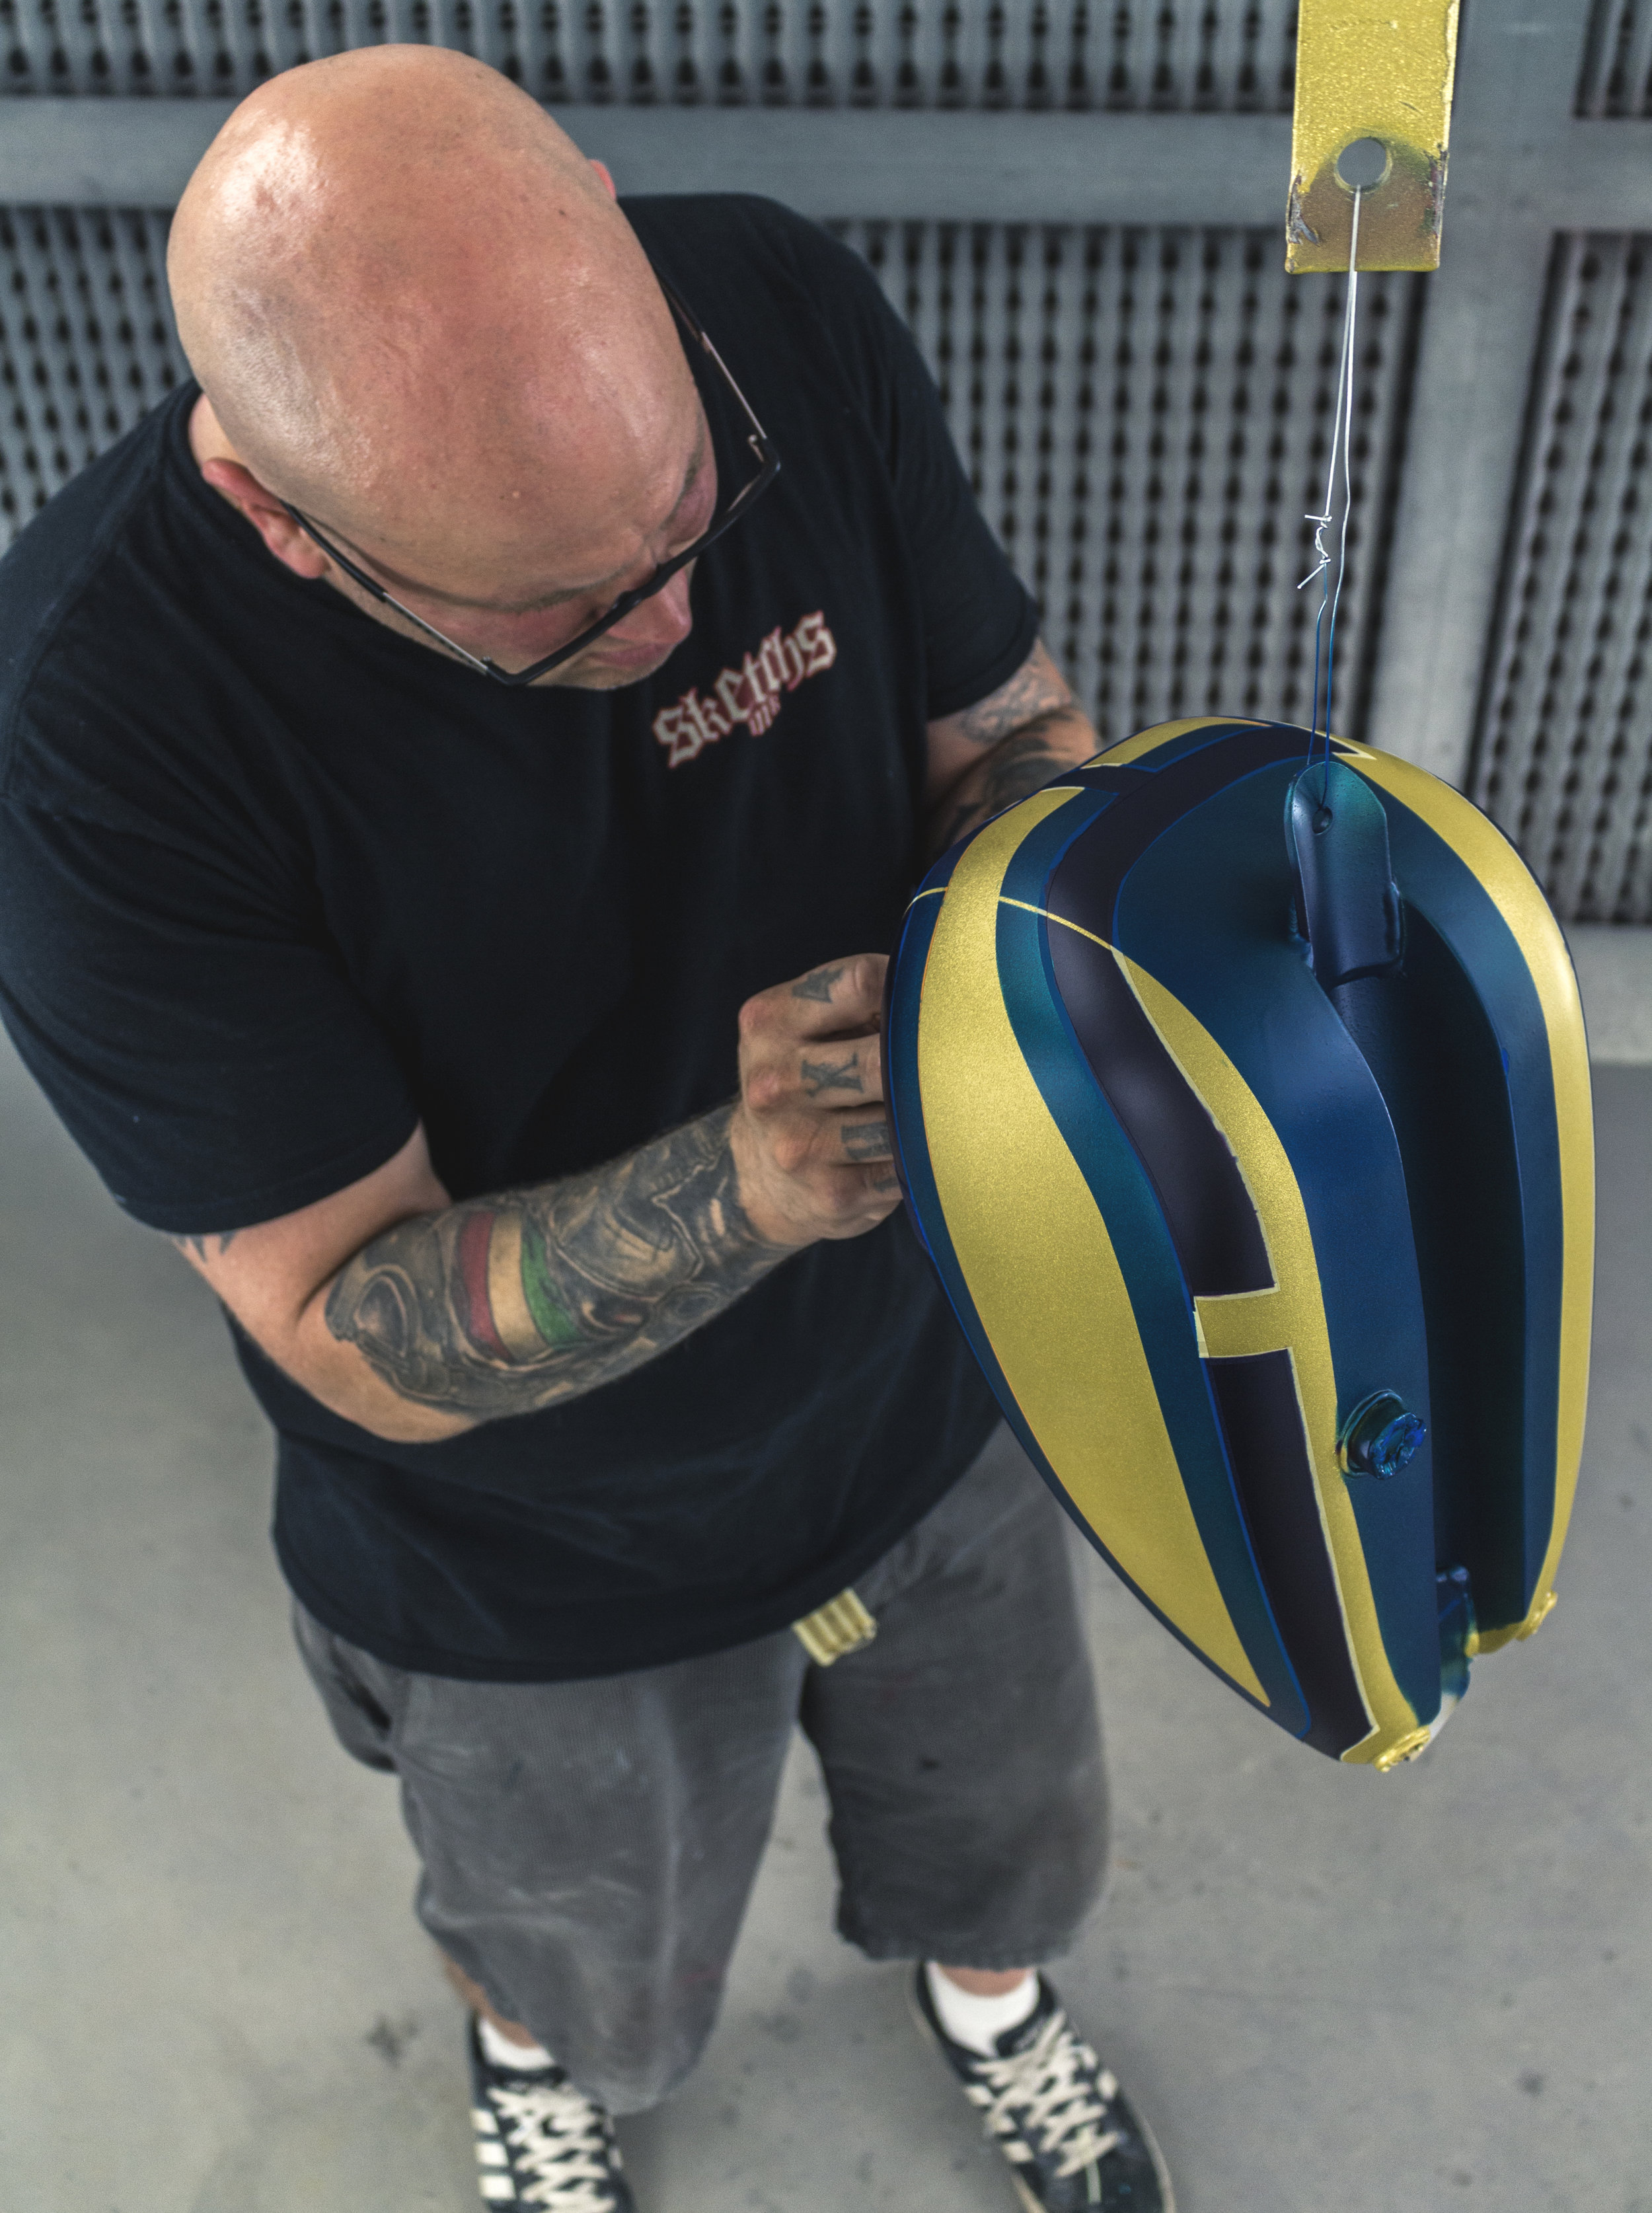 Pinstriped Scaled, Flake custom gas tank peanut tc bros for freedom machine done by Sketchs Ink Ottawa